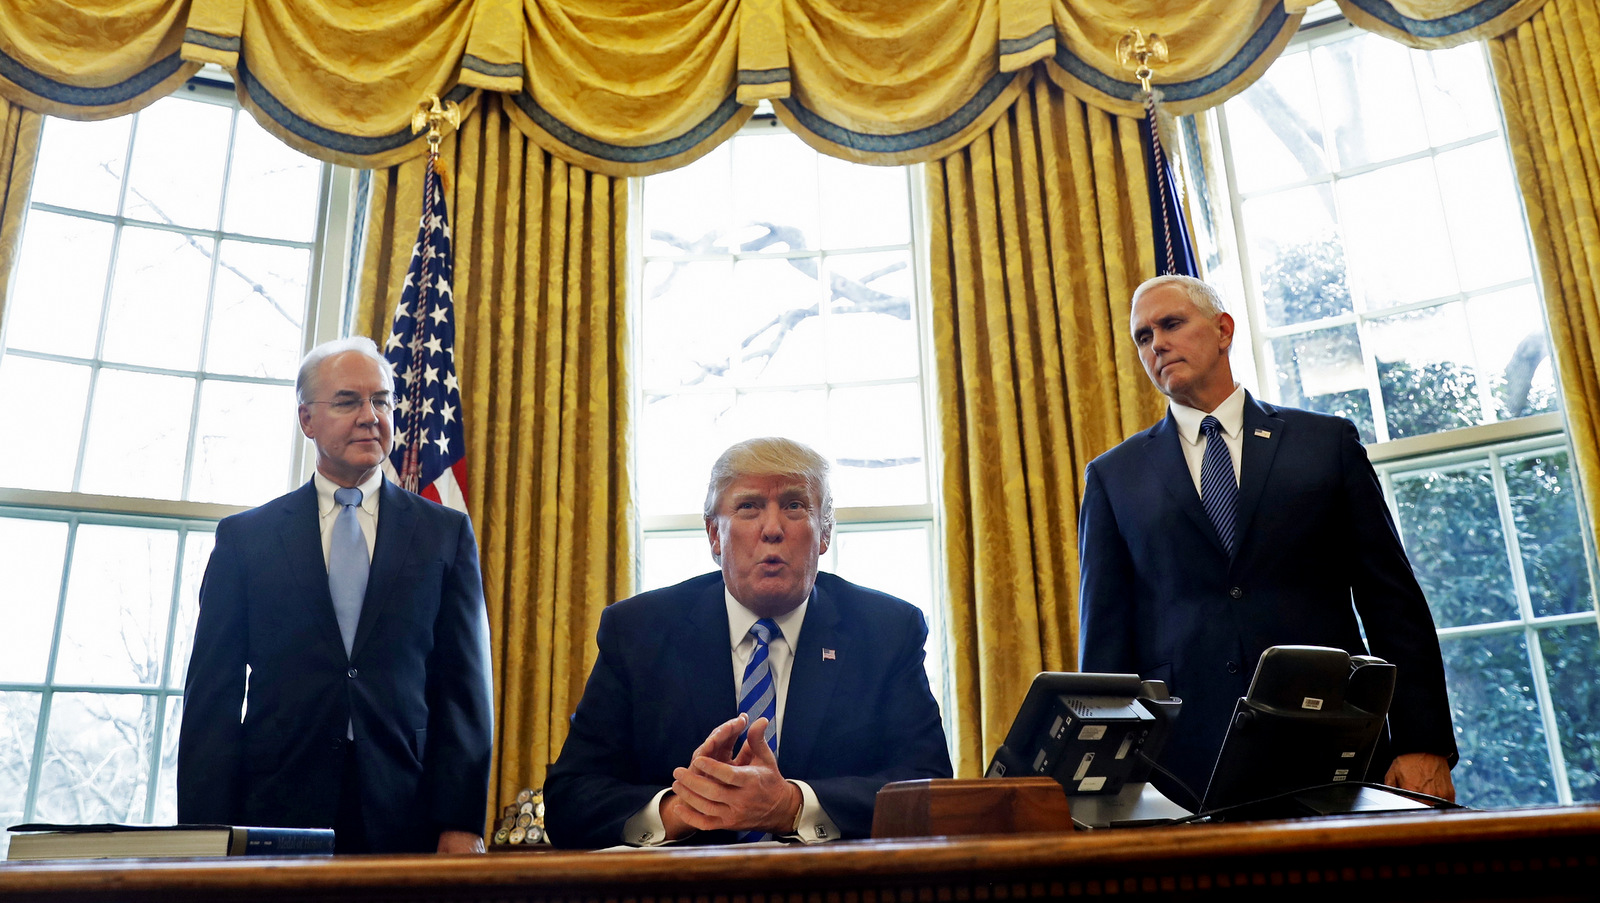 President Donald Trump, flanked by Health and Human Services Secretary Tom Price, left, and Vice President Mike Pence, meets with members of the media regarding the health care overhaul bill, March 24, 2017. (AP/Pablo Martinez Monsivais)